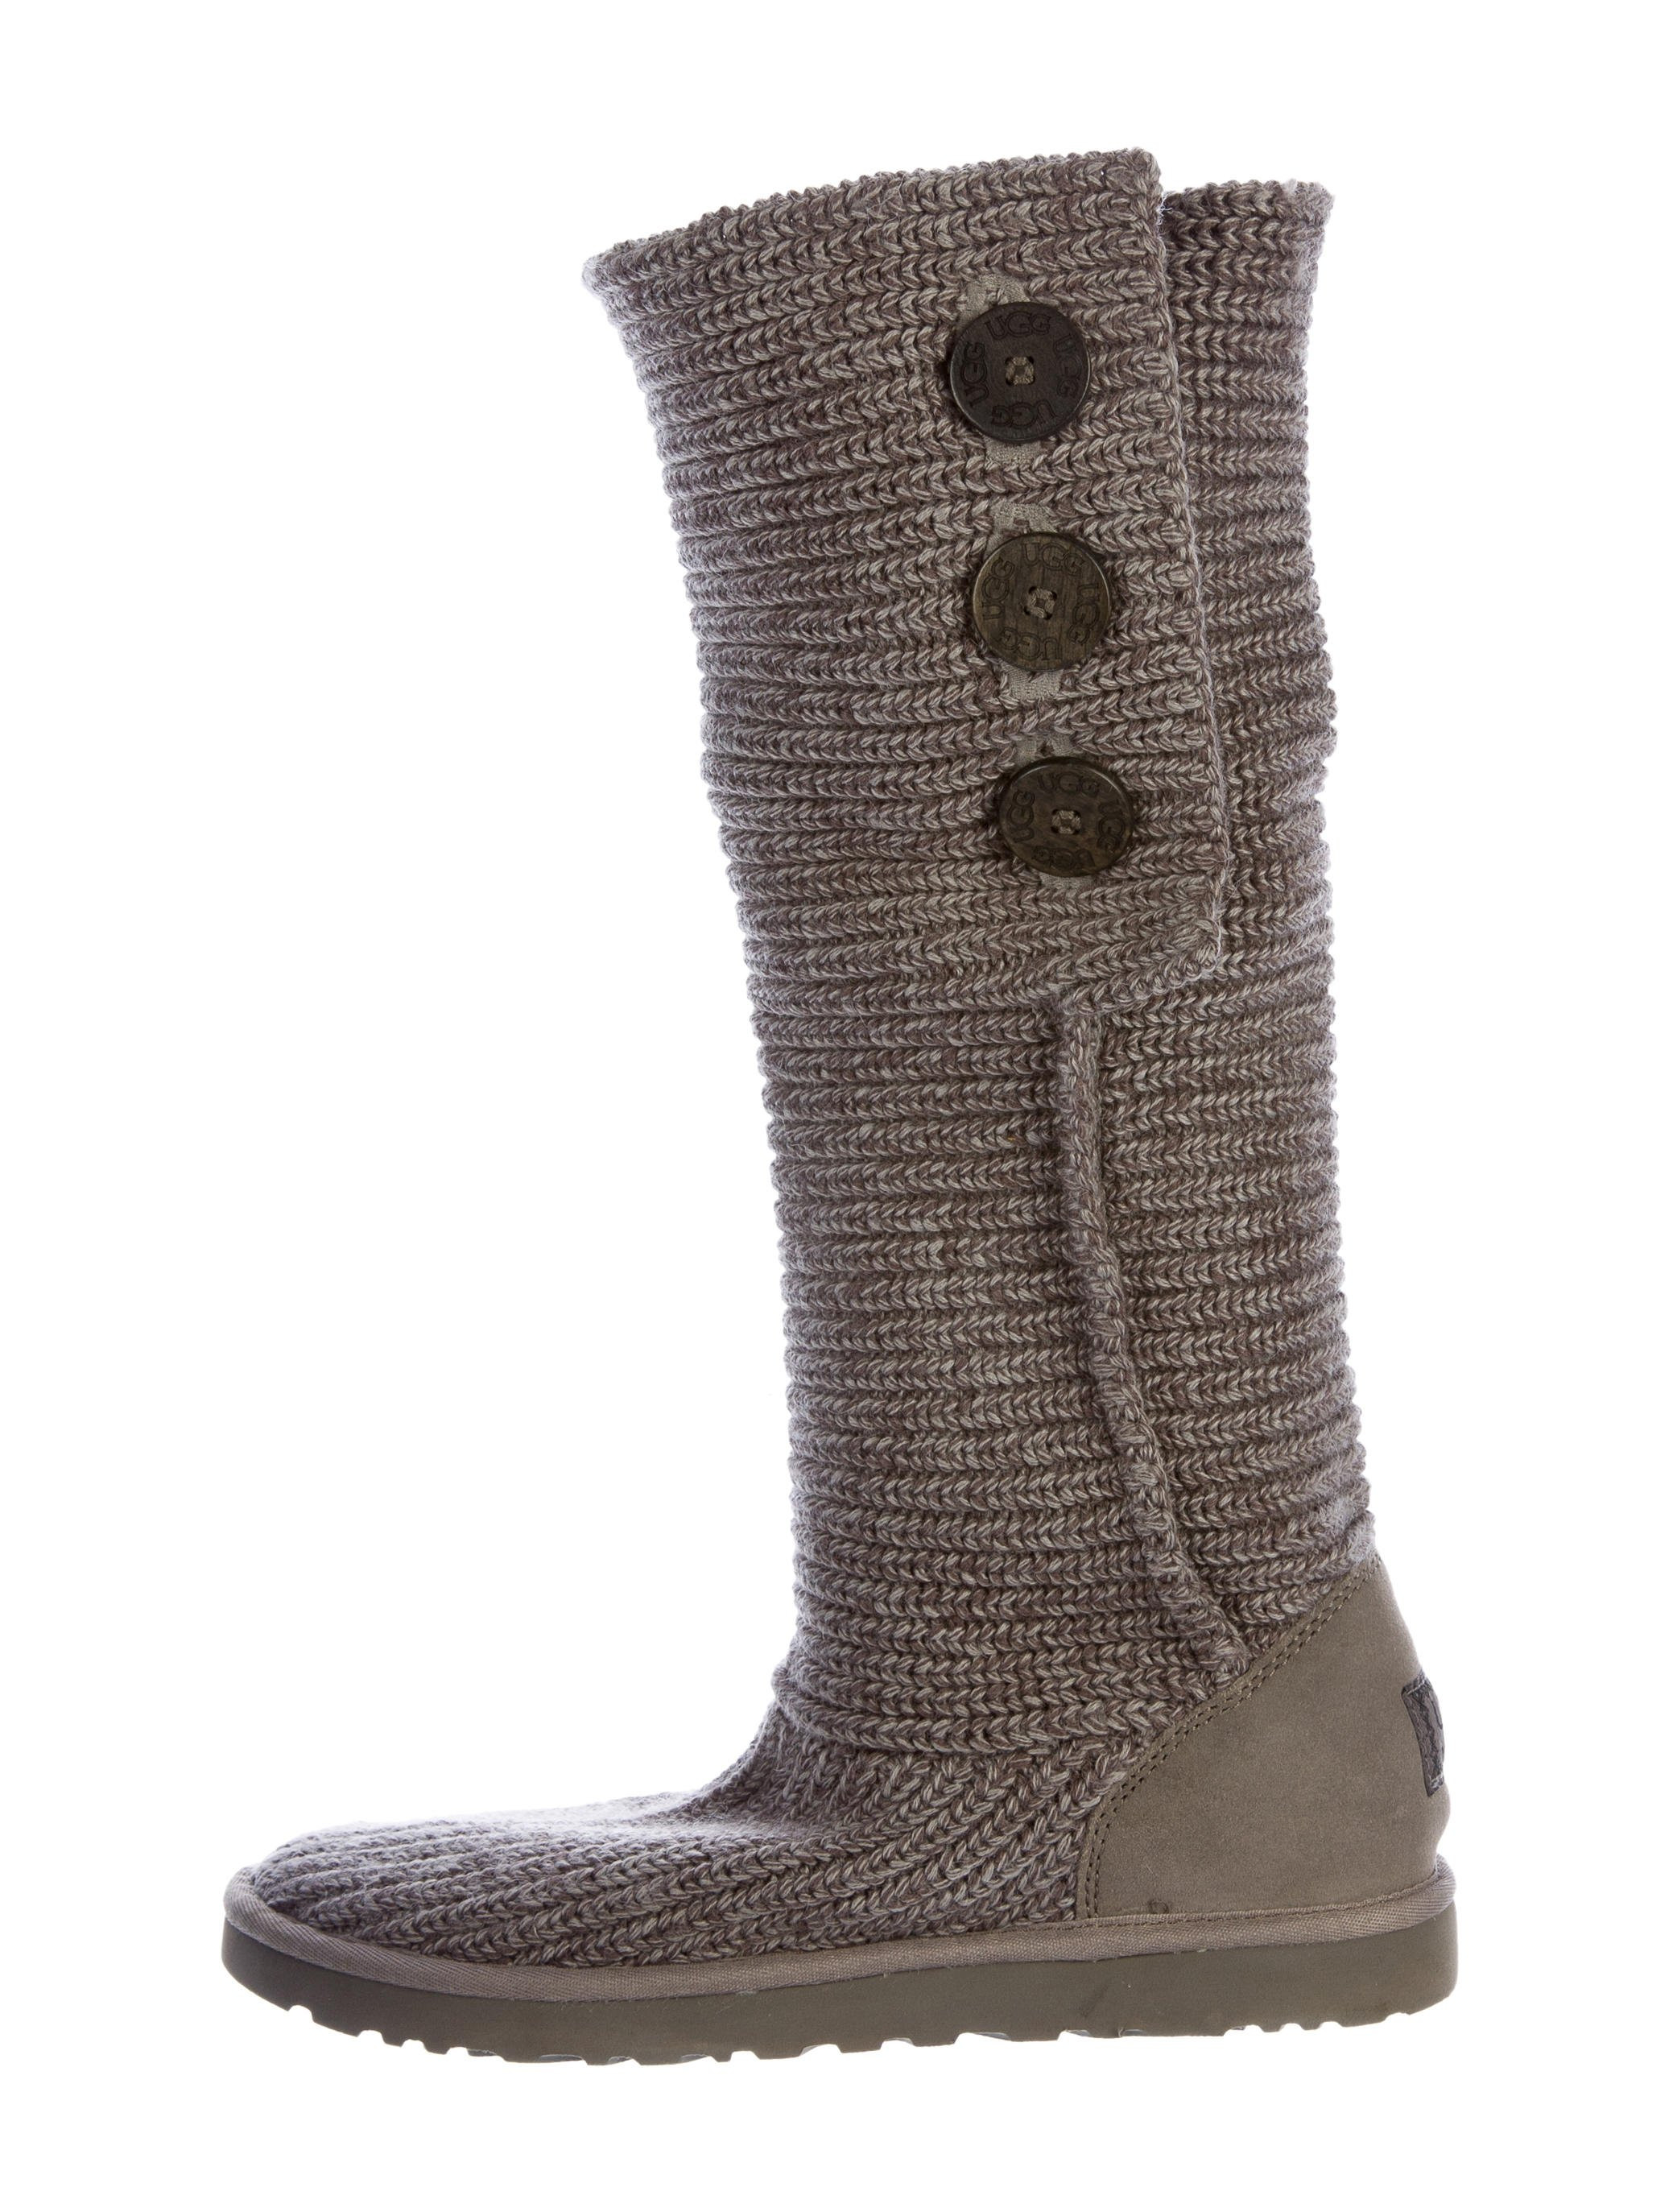 Knit Boots Best Of Ugg Australia Cardy Knit Boots Shoes Wuugg Of Luxury 48 Photos Knit Boots